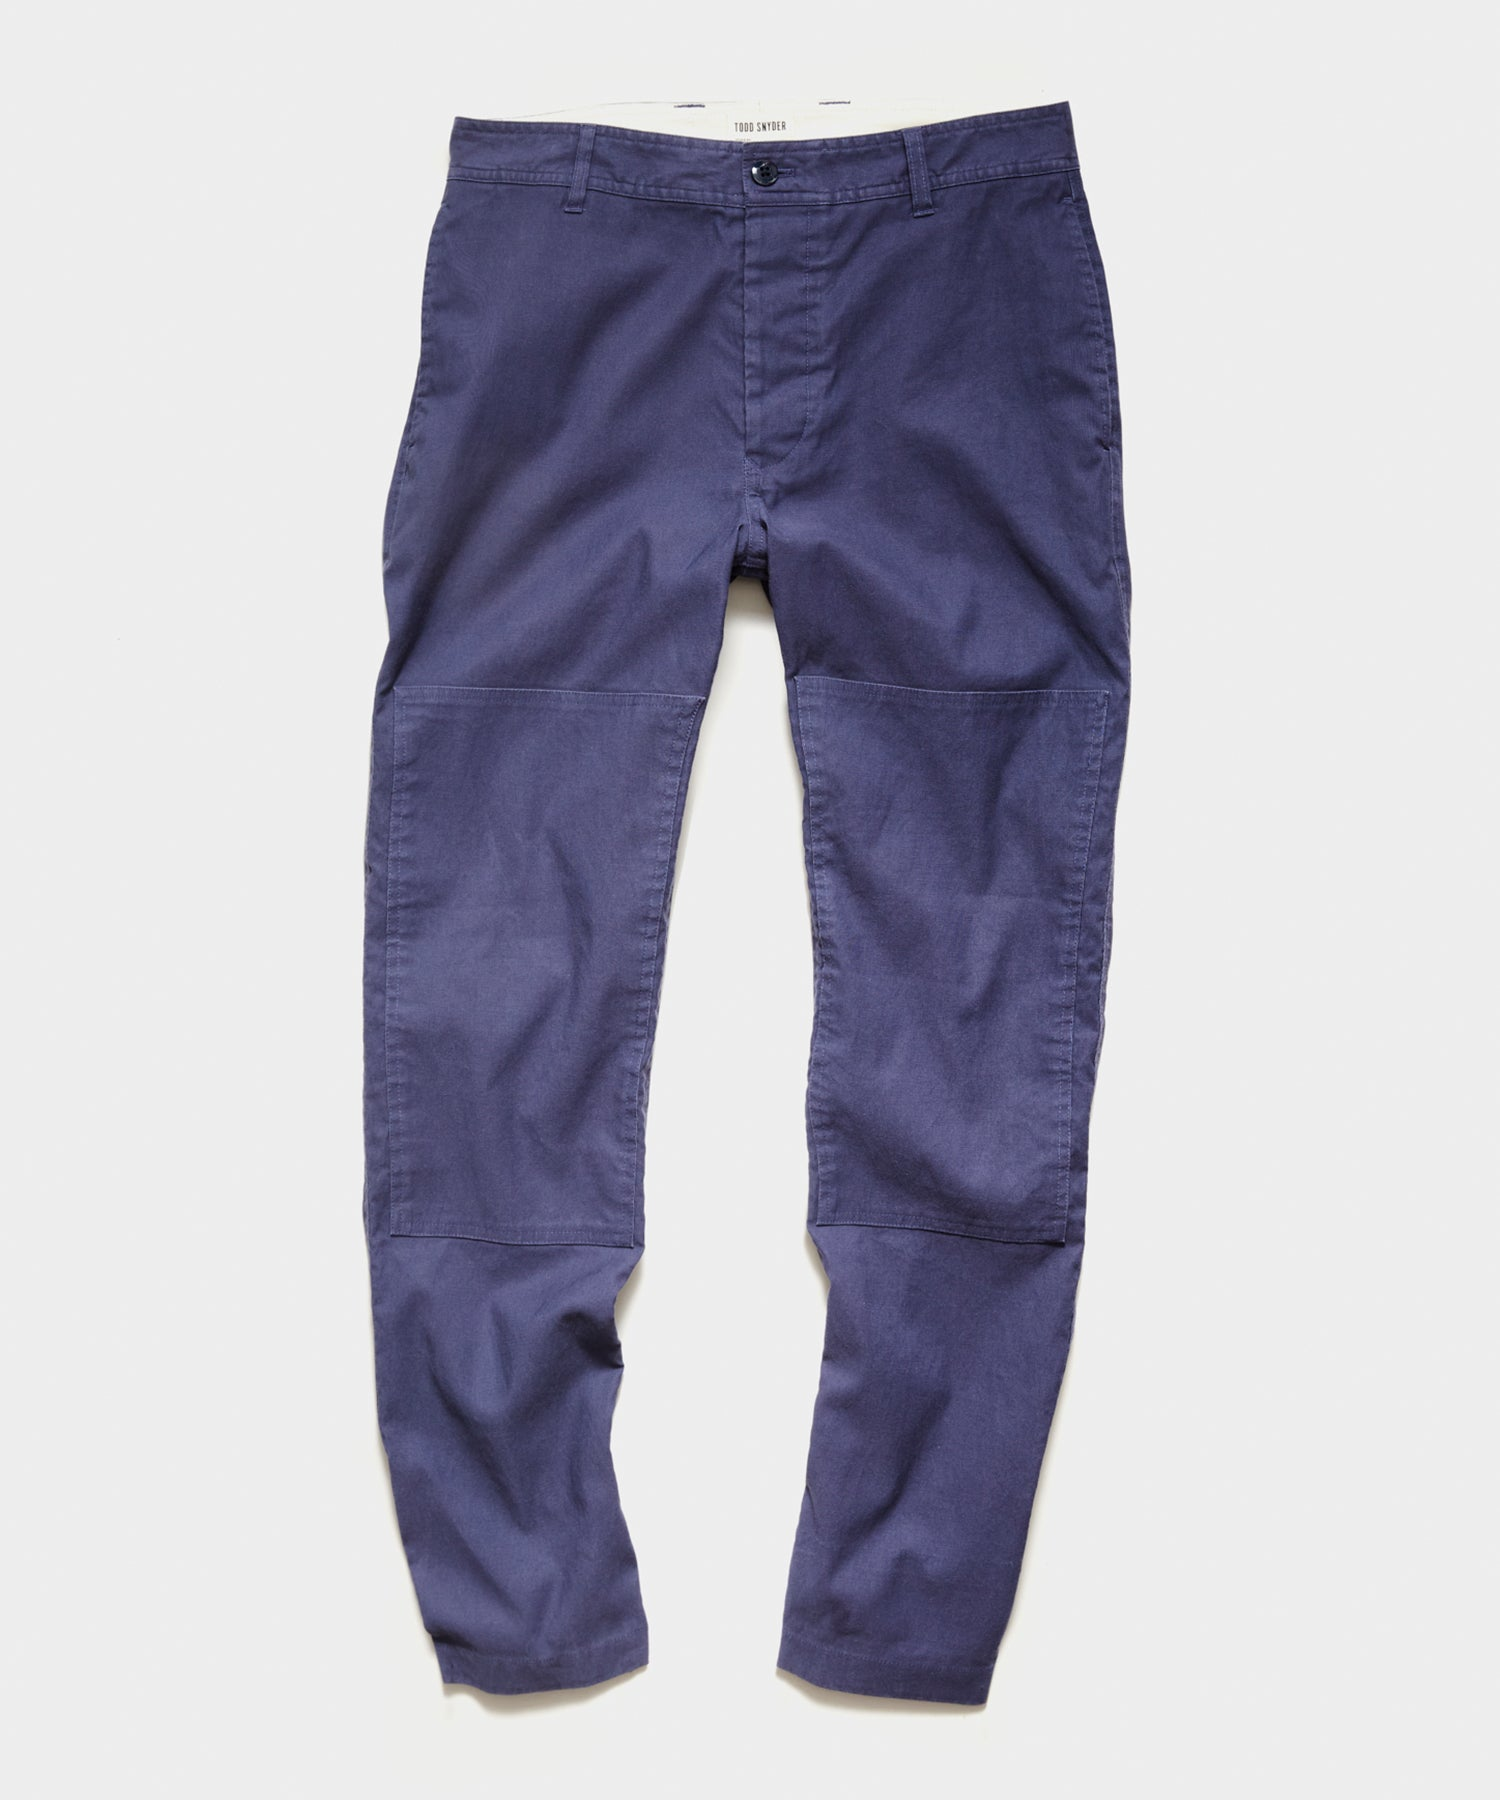 Japanese Workman's Pant in Original Navy